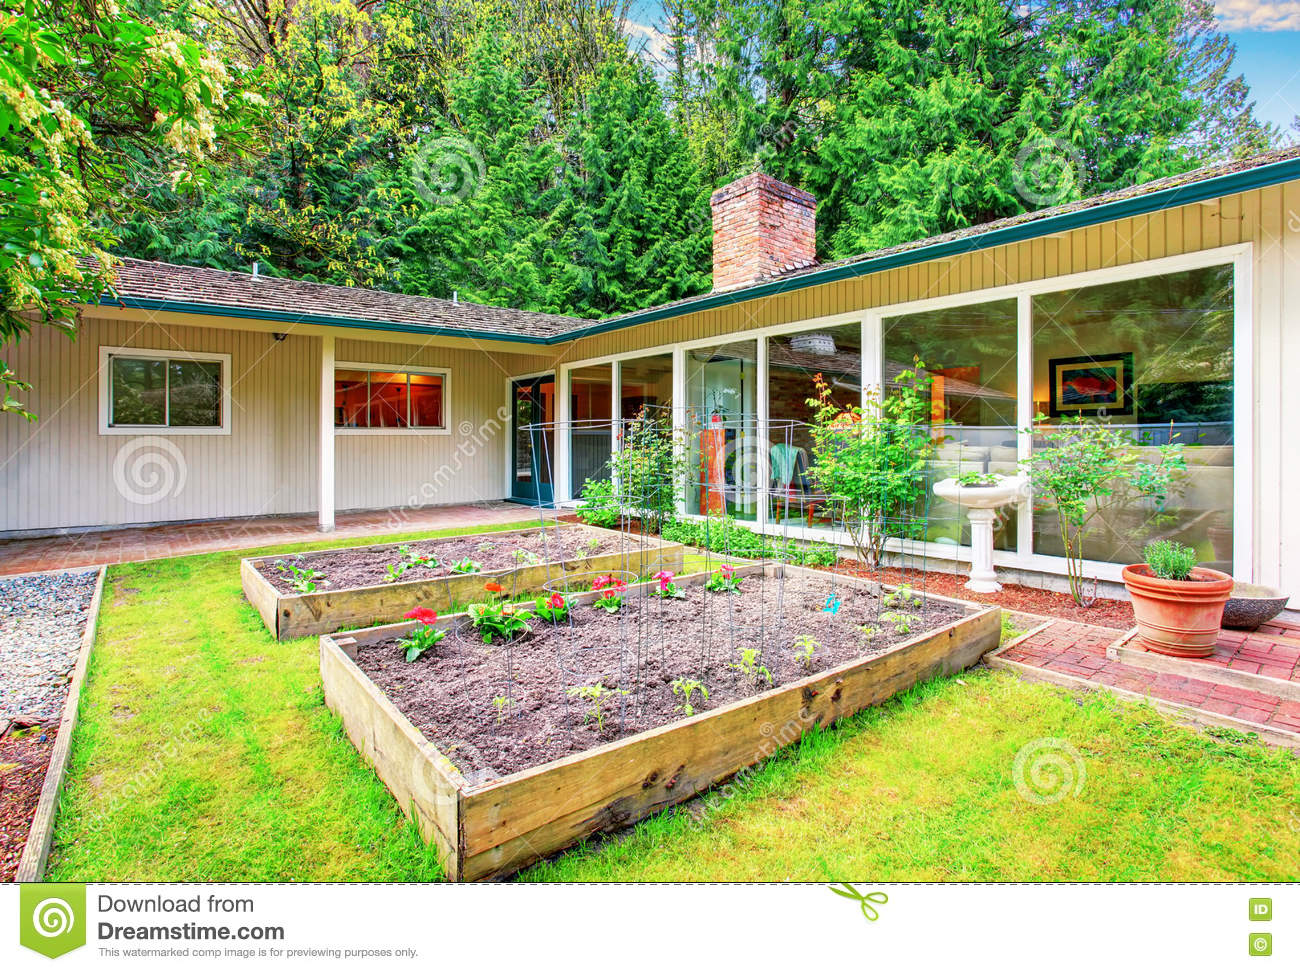 Vegetable garden with covered walkways - Royalty Free Stock Photo